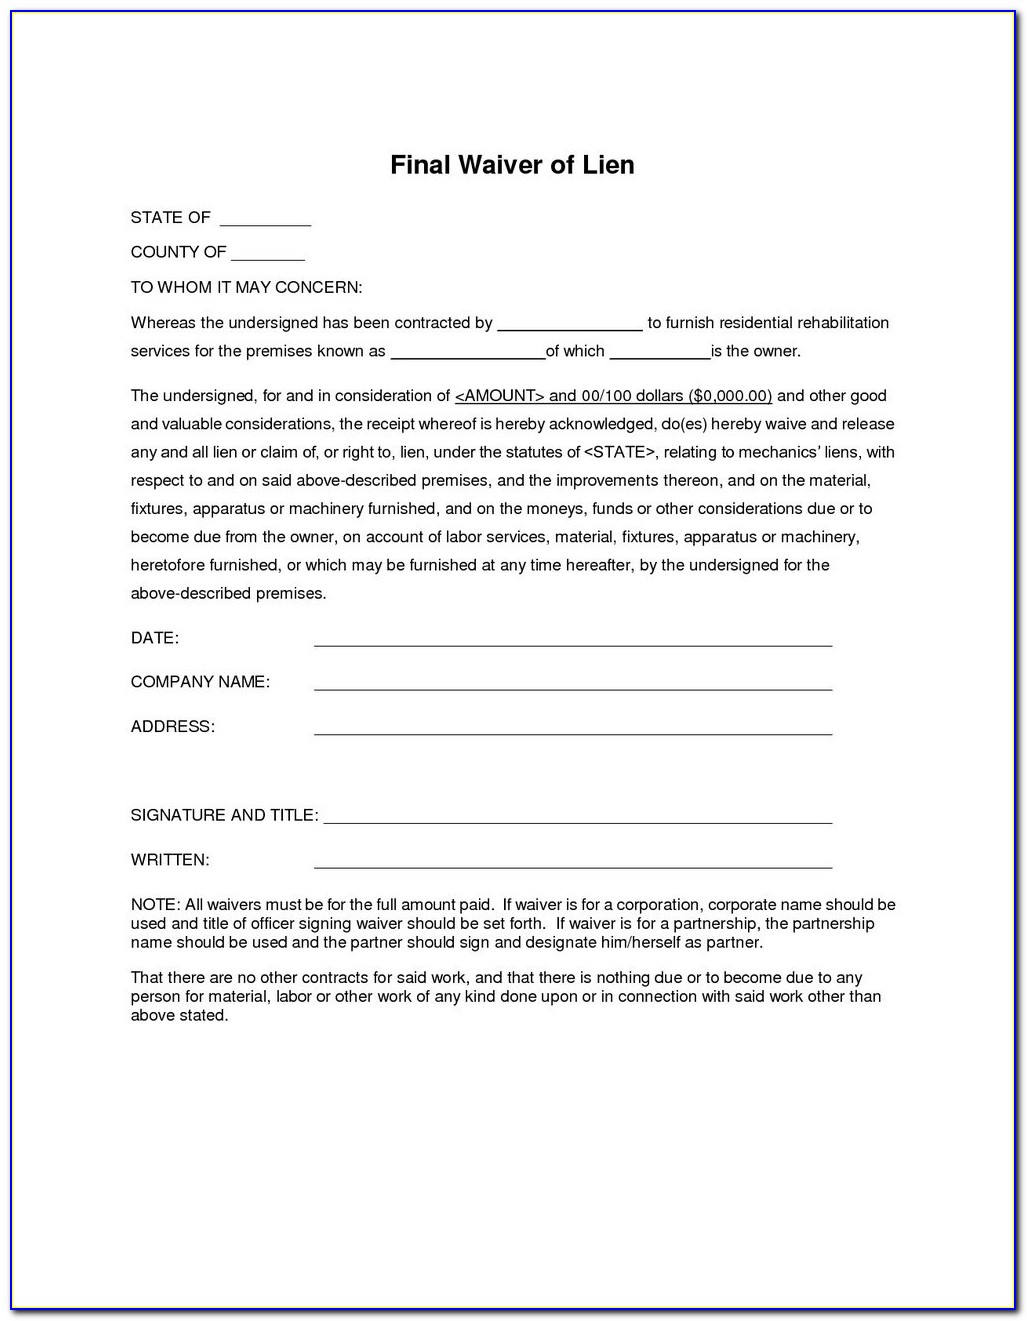 Final Lien Waiver Form New York